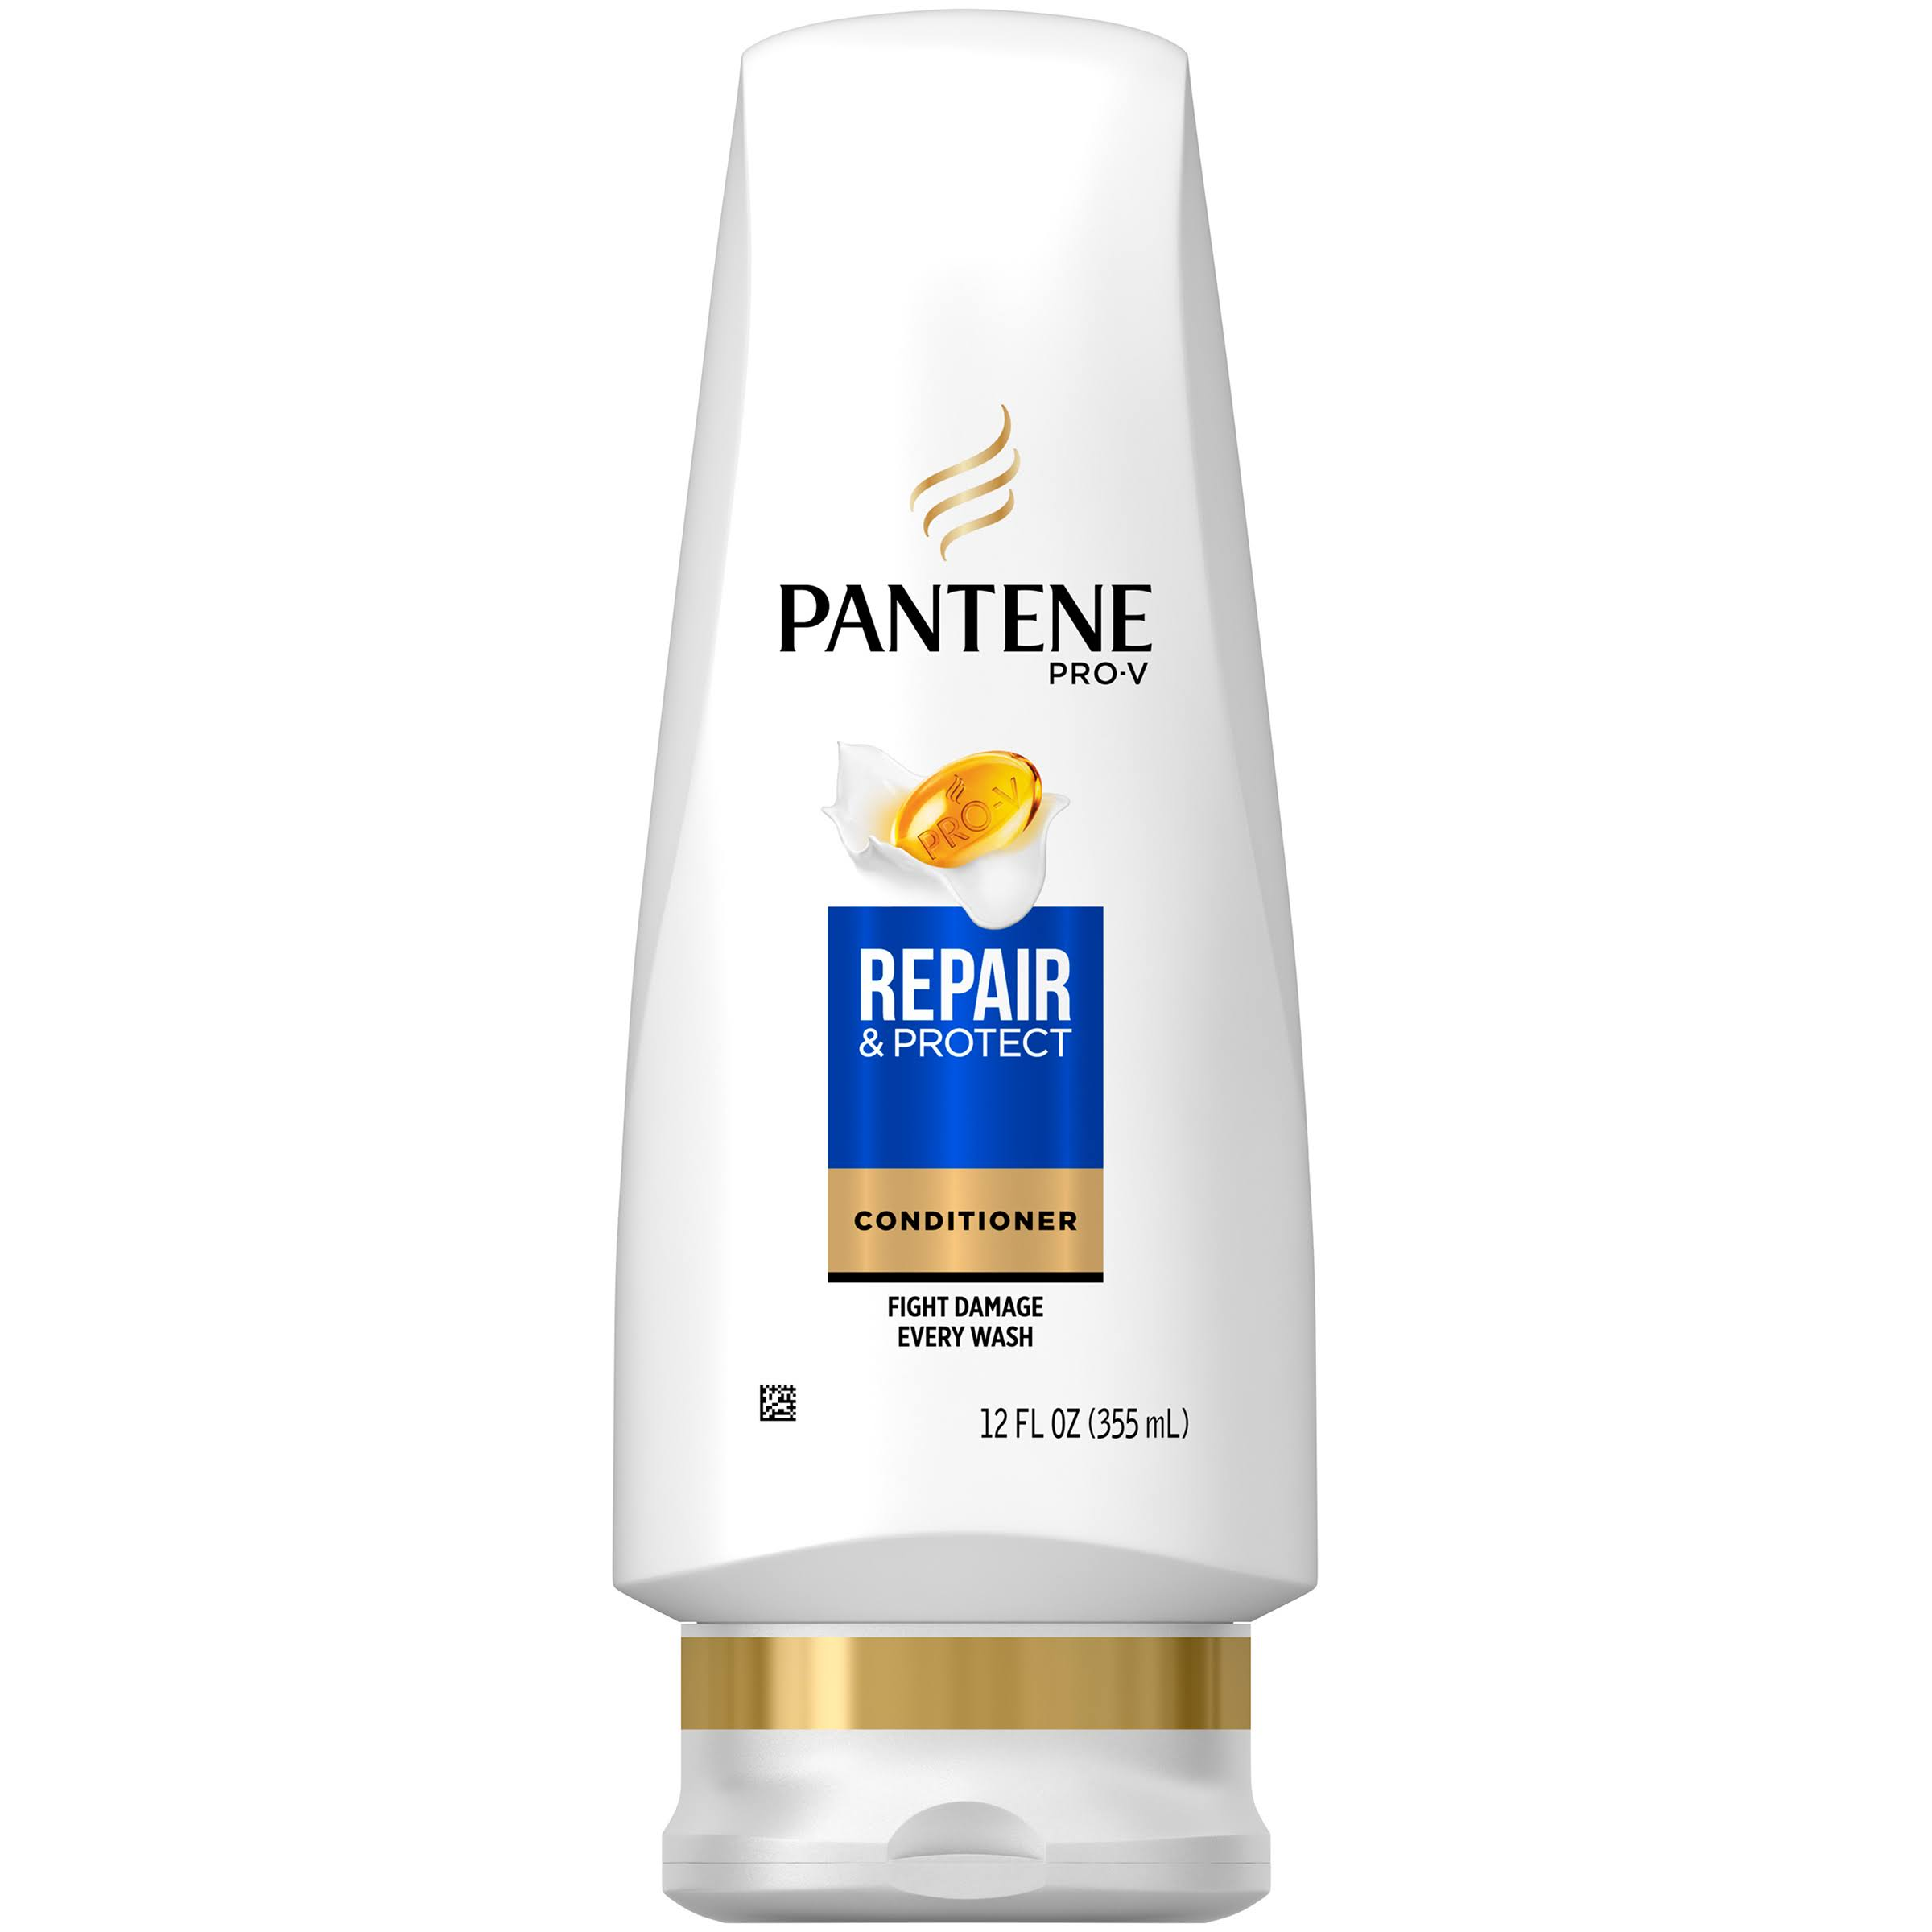 Pantene Pro-V Dreamcare Repair & Protect Conditioner - 12oz